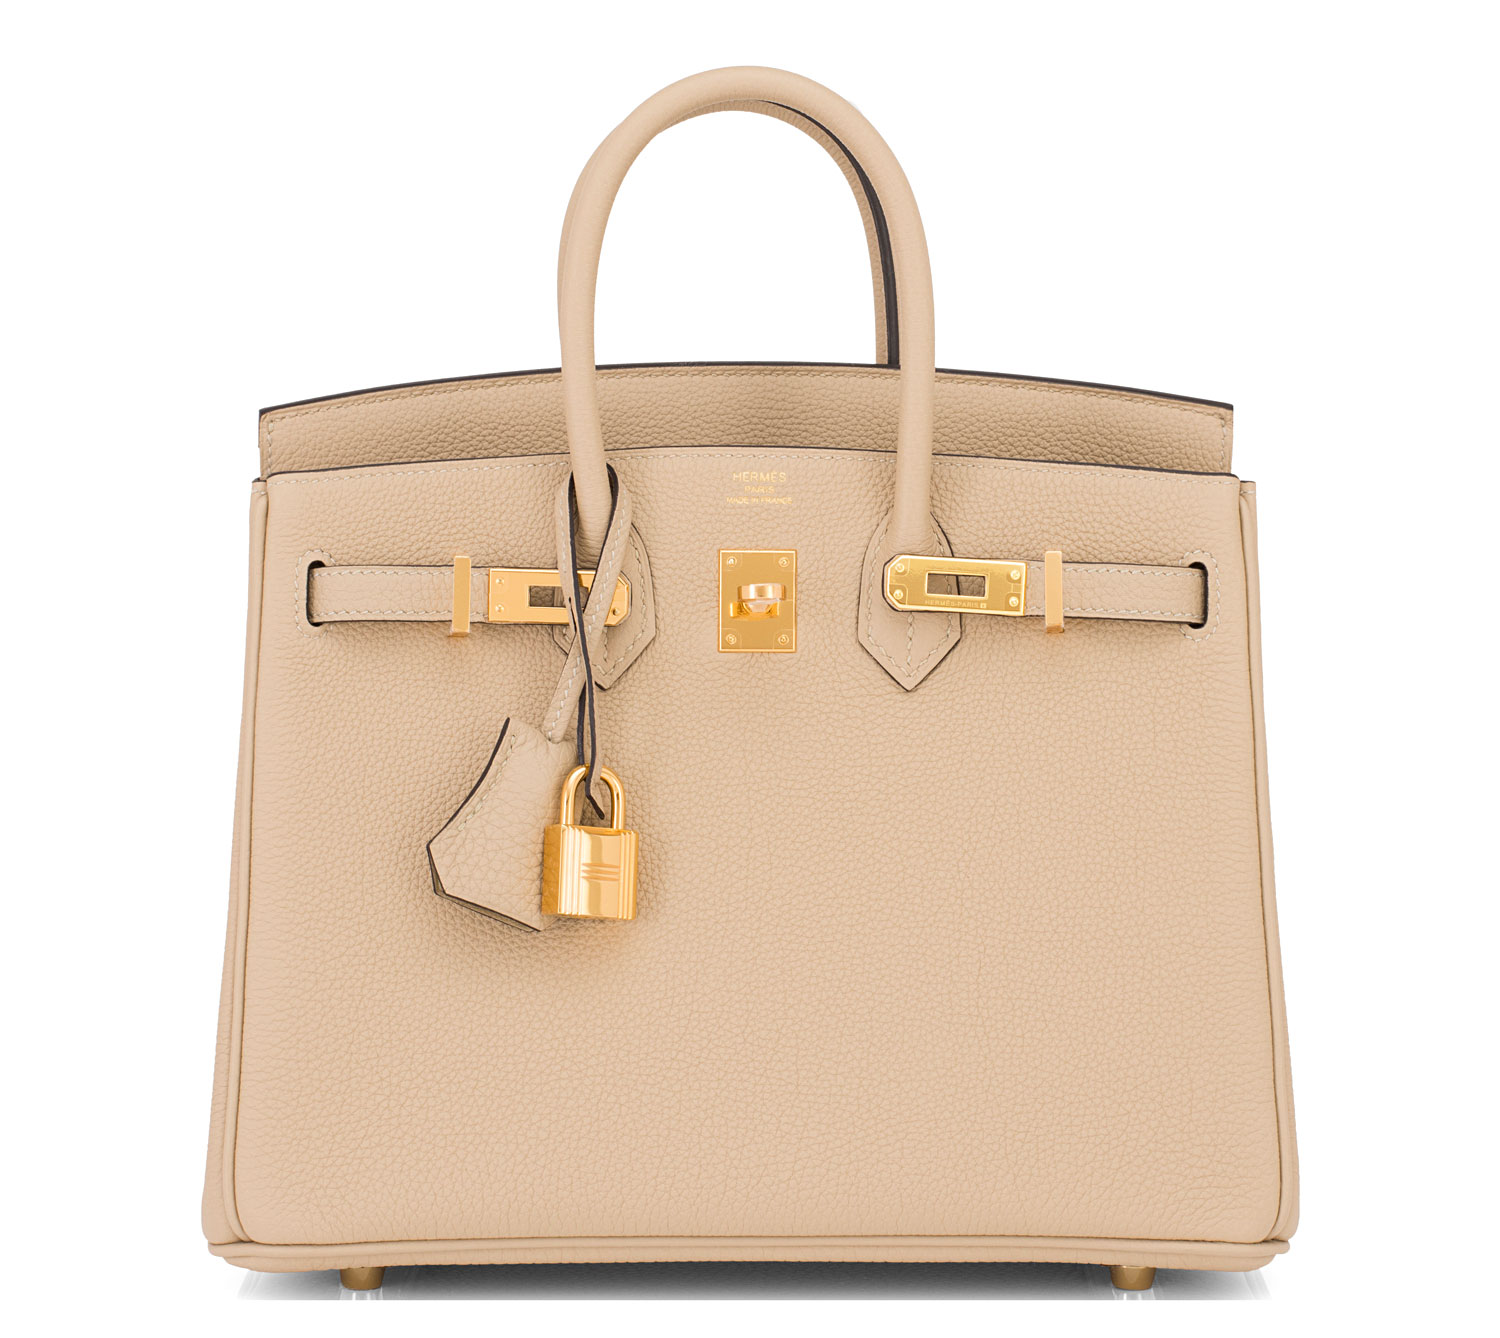 Top ten handbags of all time by Claudia Valentin